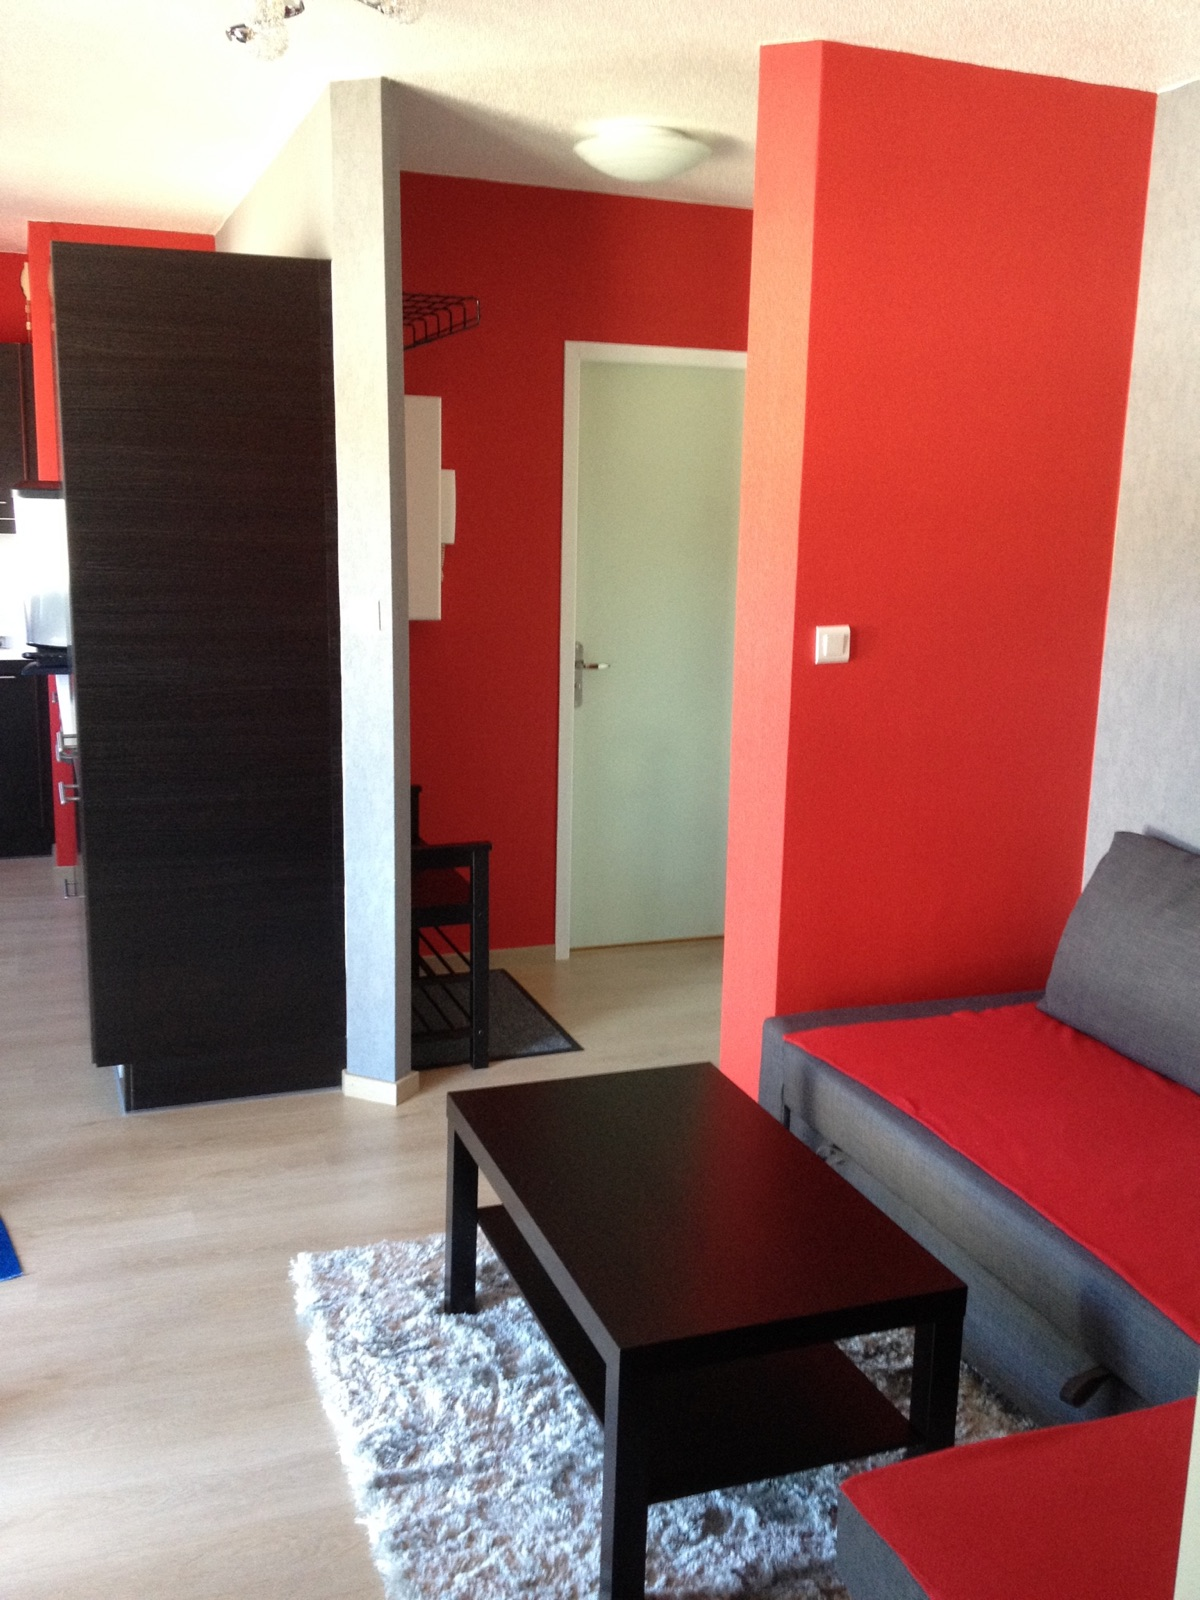 Agence immobili re g rardmer annonce appartements n 2357 for Agence immobiliere gerardmer